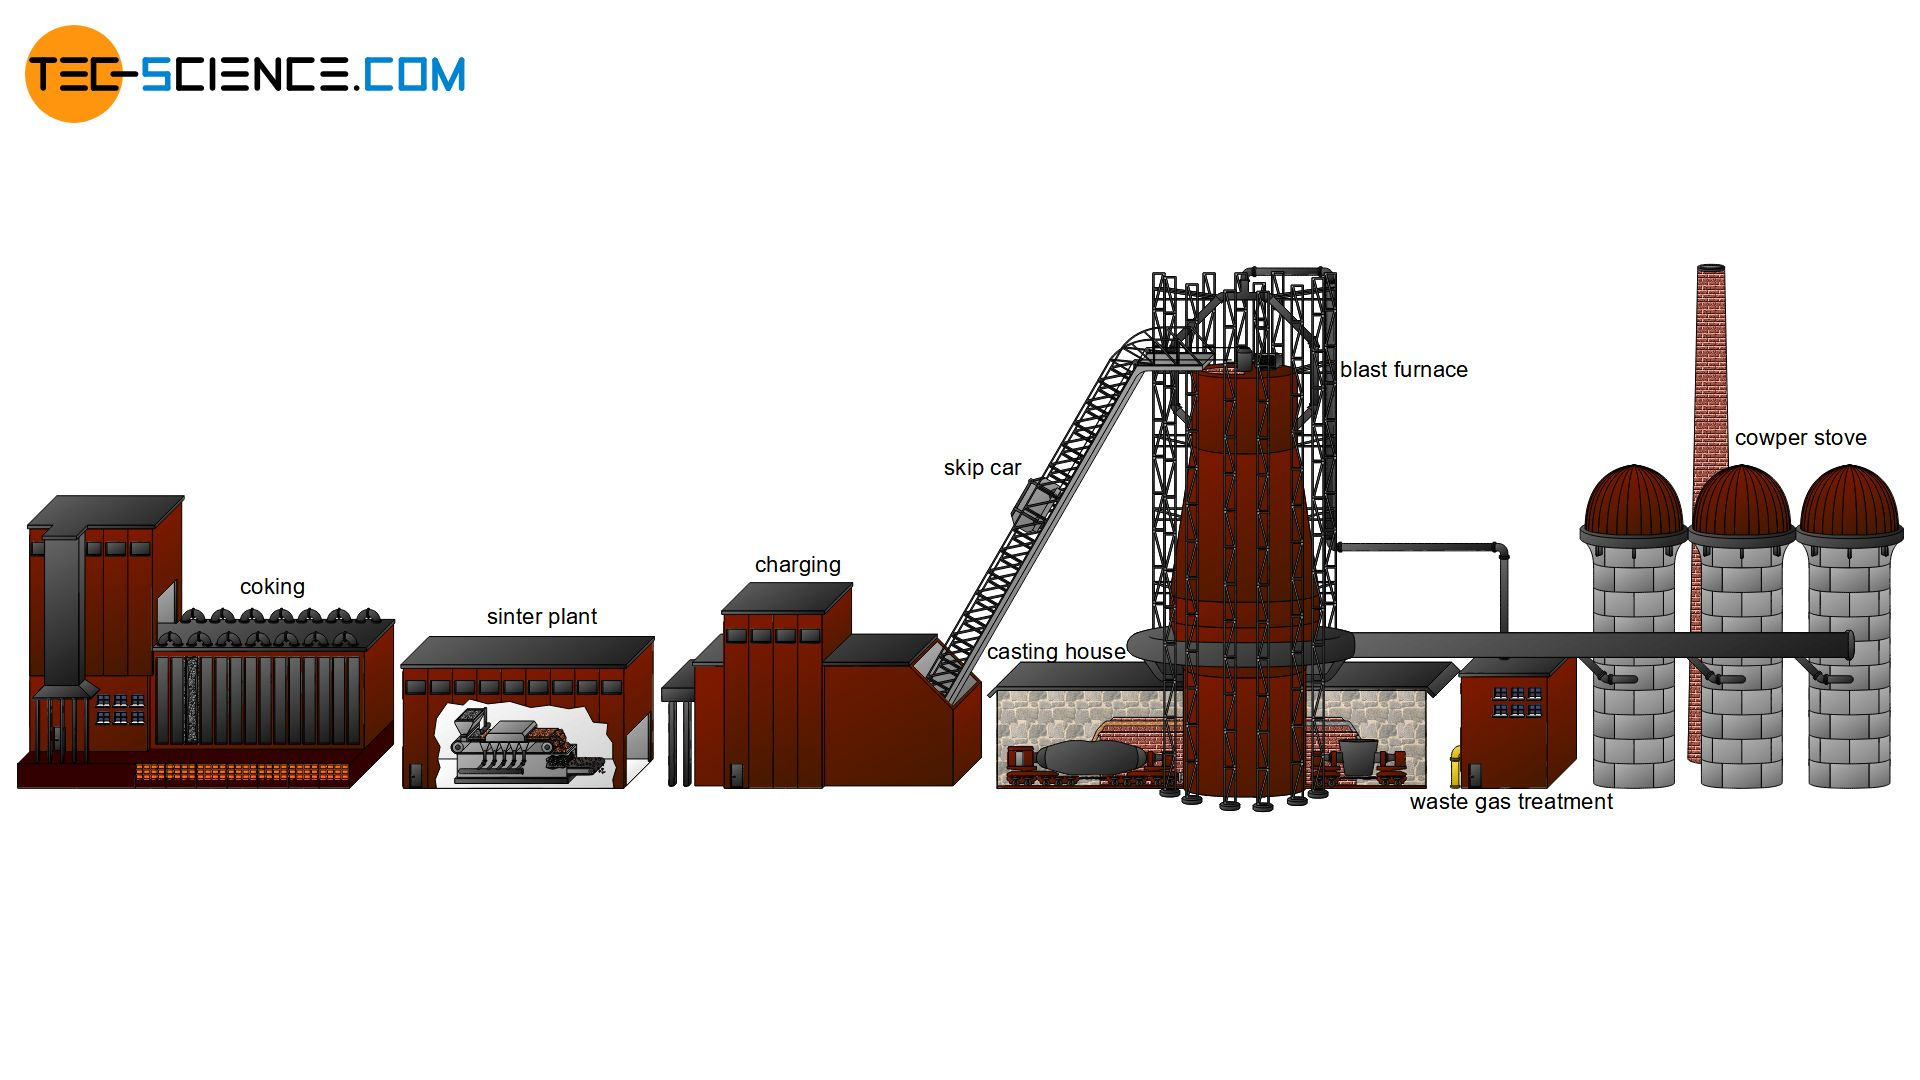 Schematic overview of an ironworks